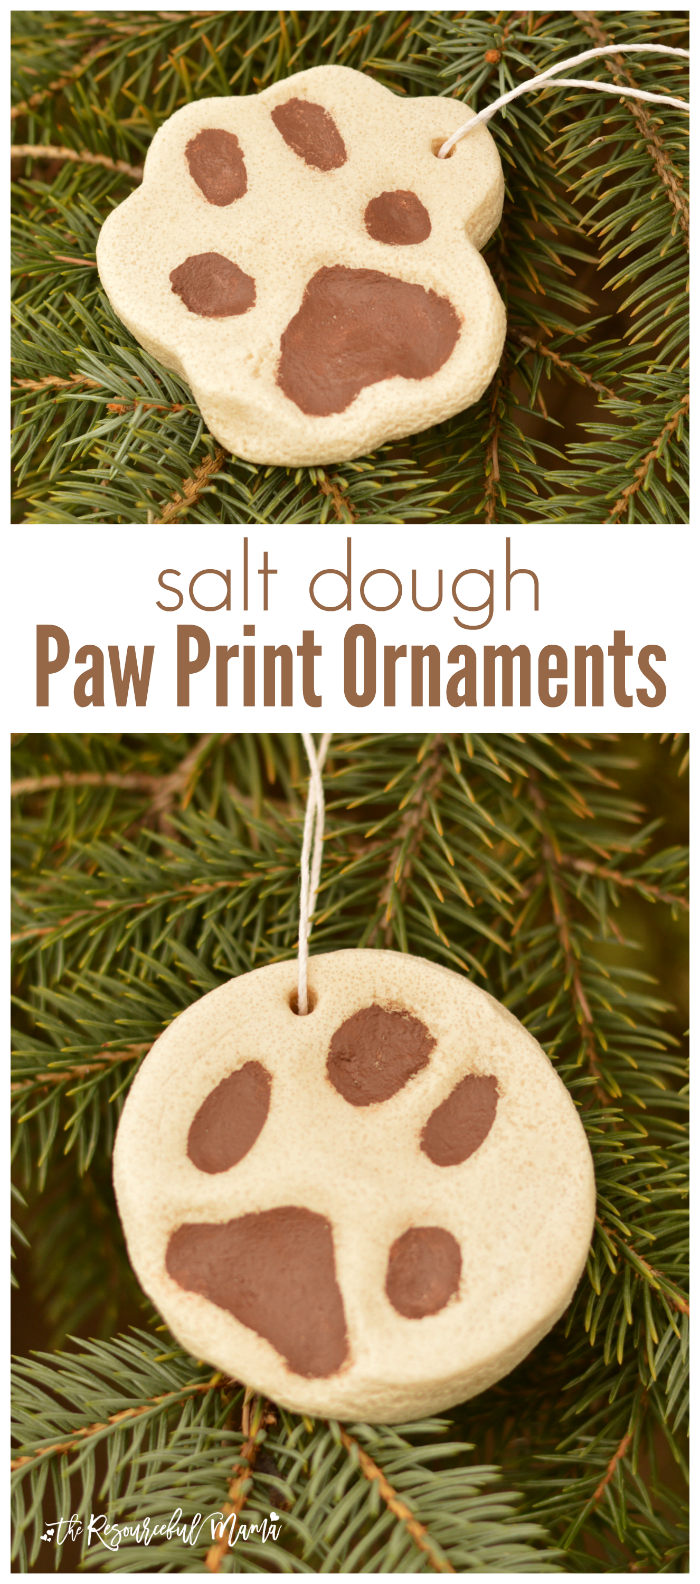 paw-print-ornaments-long-collage